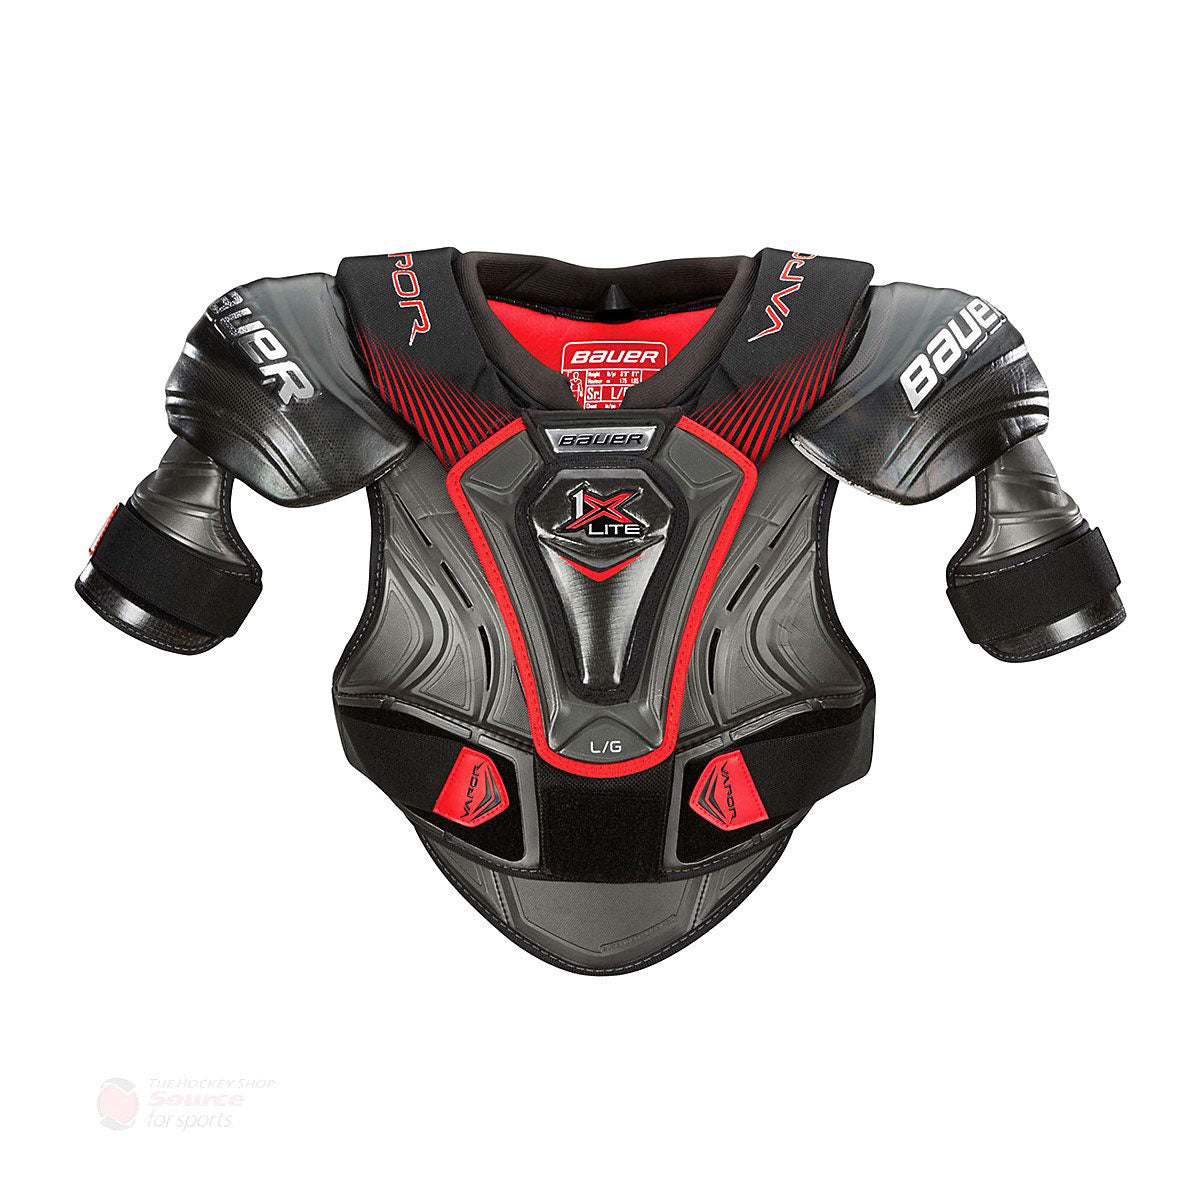 Bauer Vapor 1X Lite Junior Shoulder Pads